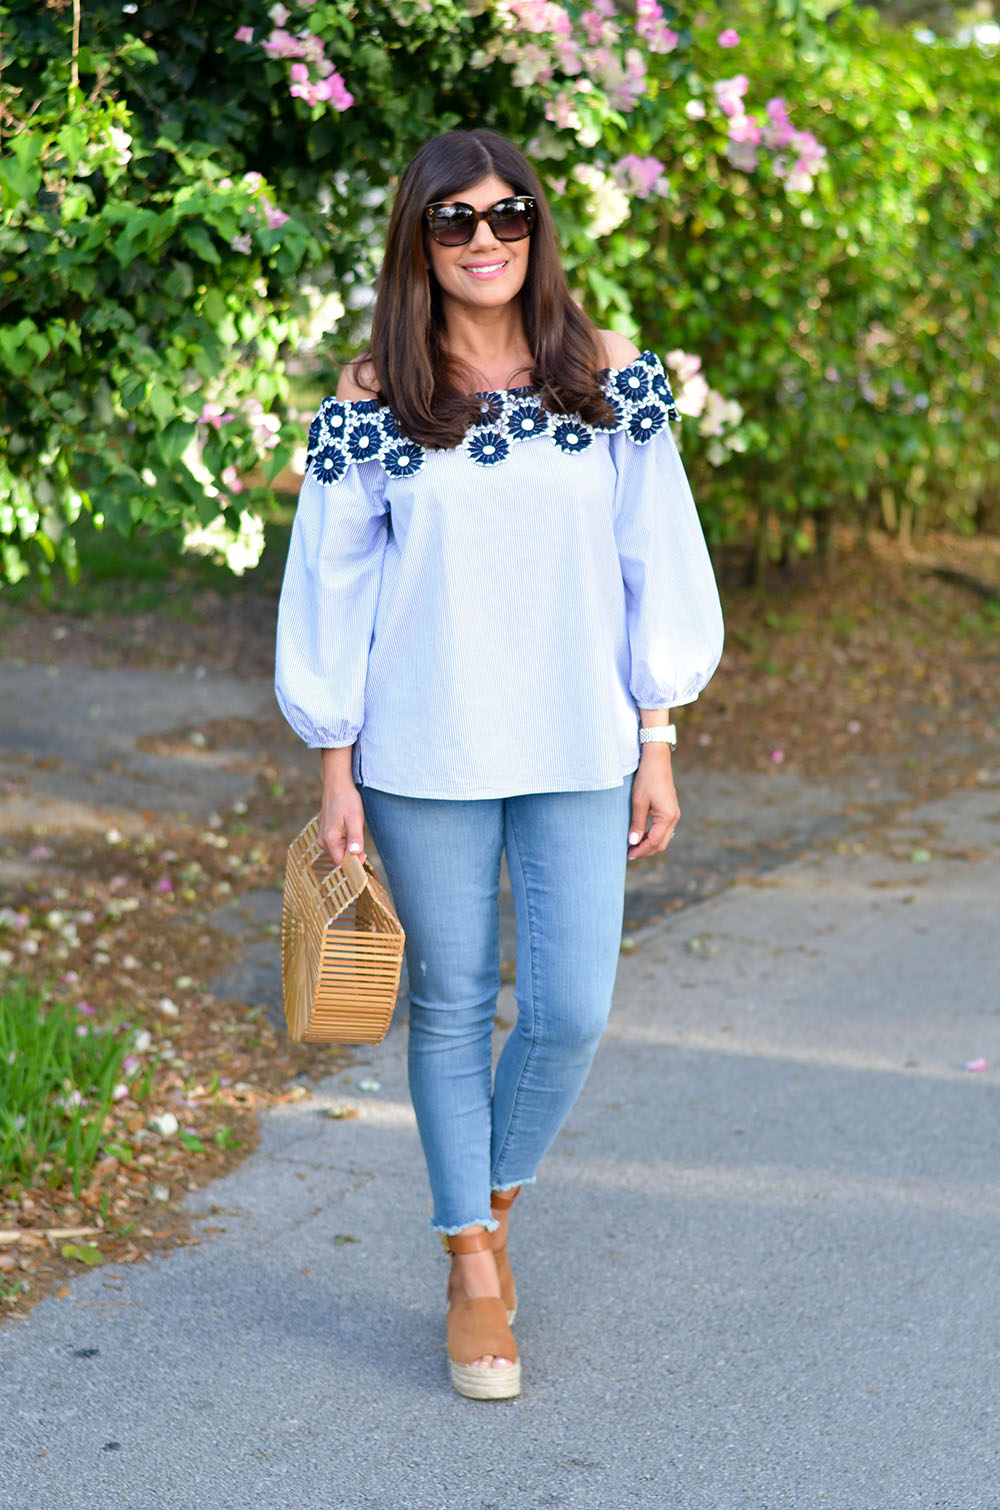 White and blue classy outfit with leggings, denim, jeans